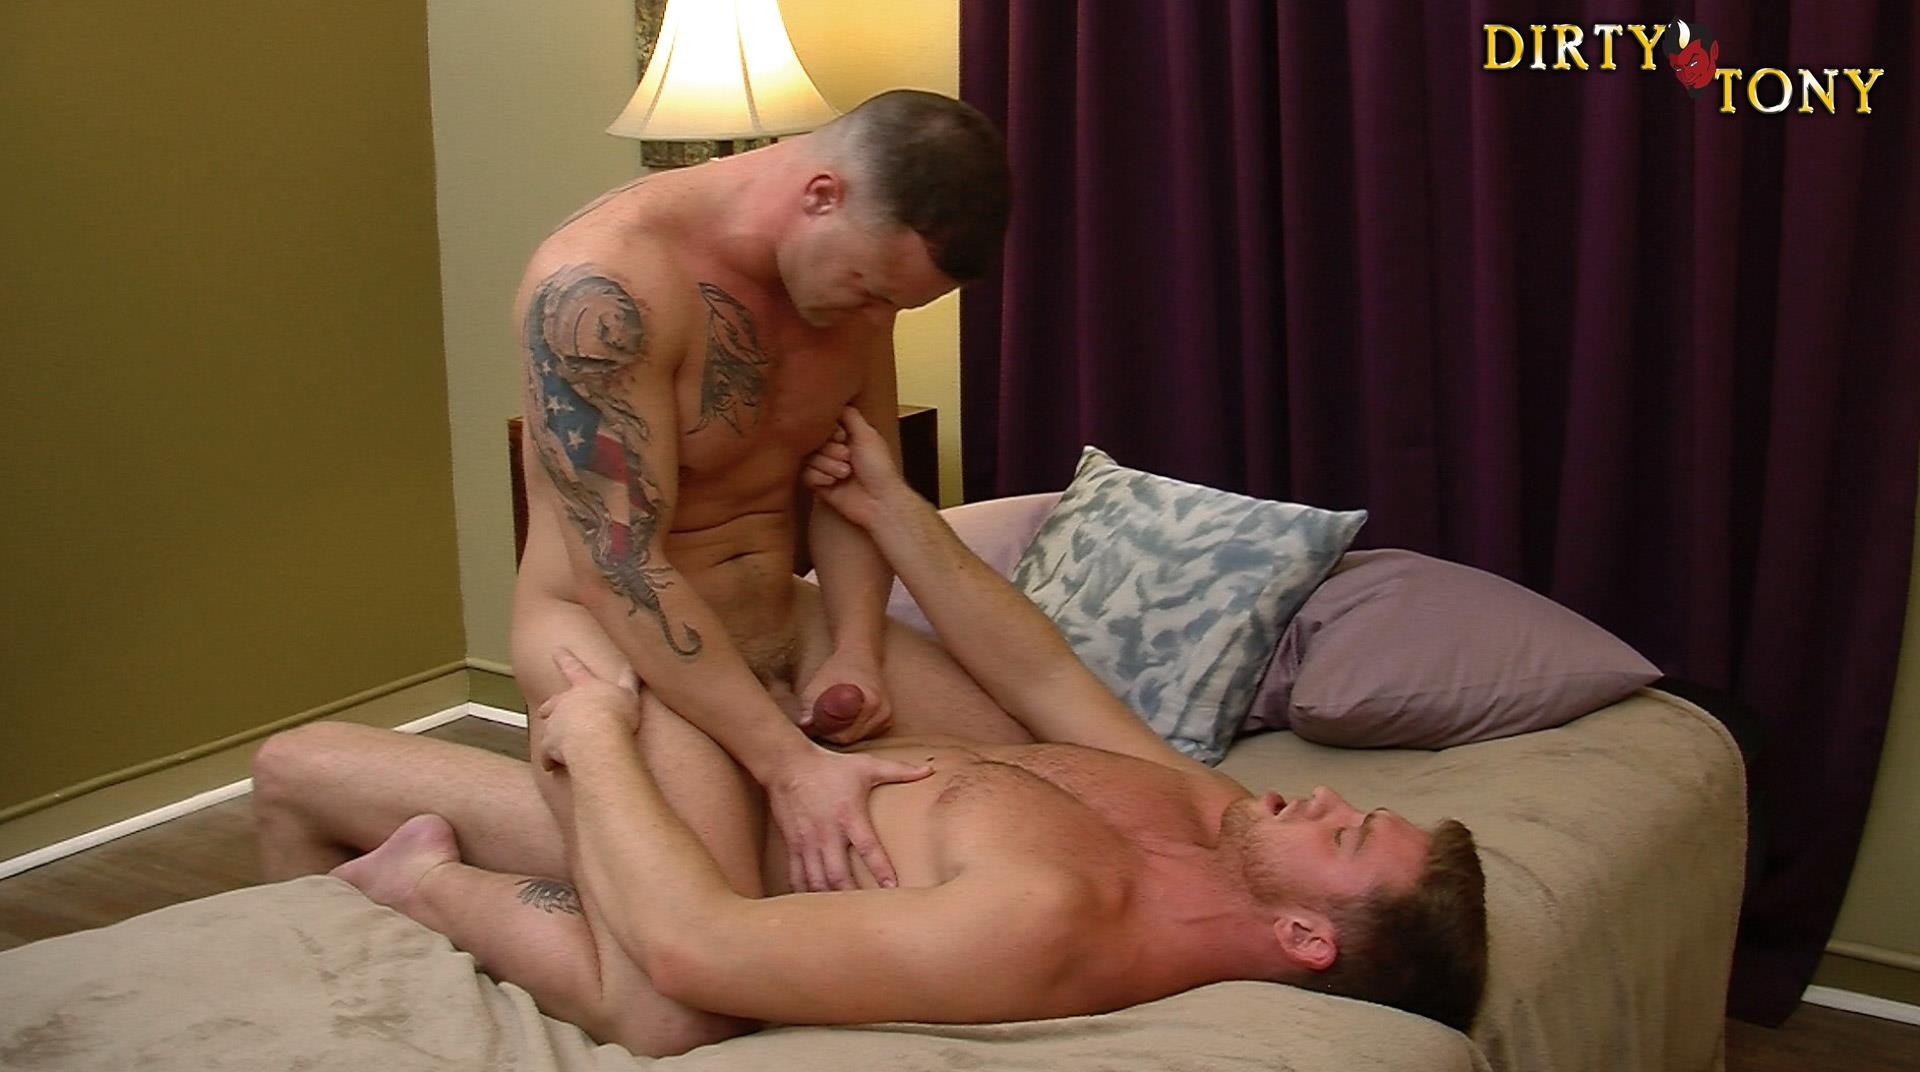 Dirty-Tony-Logan-Blake-and-Connor-Maguire-Marine-Getting-Fucked-In-the-Ass-Amateur-Gay-Porn-14 Former US Marine Takes A Big Uncut Cock Up The Ass